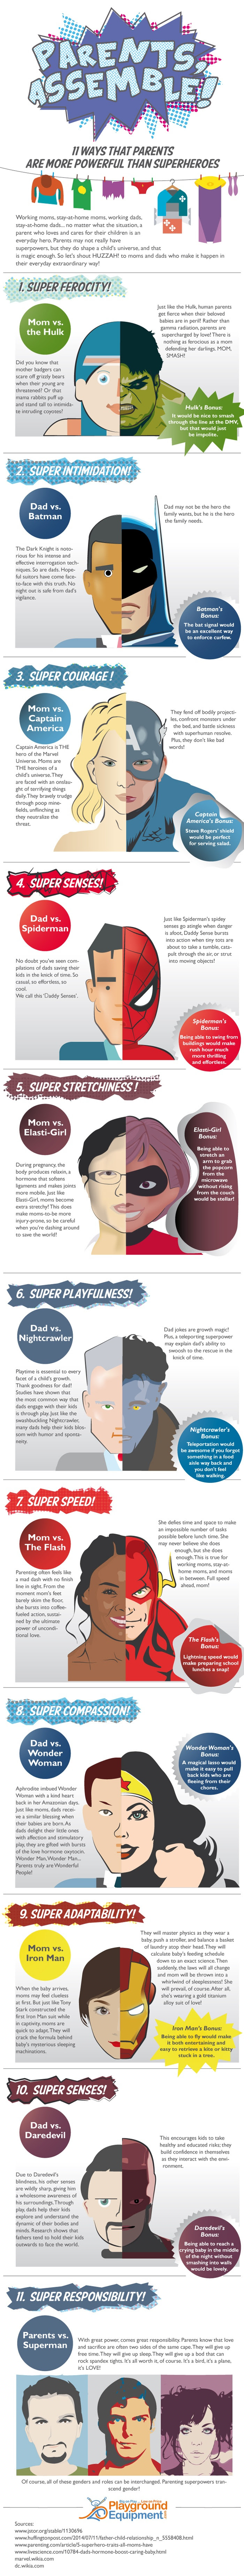 Ways Parents Are More Powerful Than Superheroes Infographic